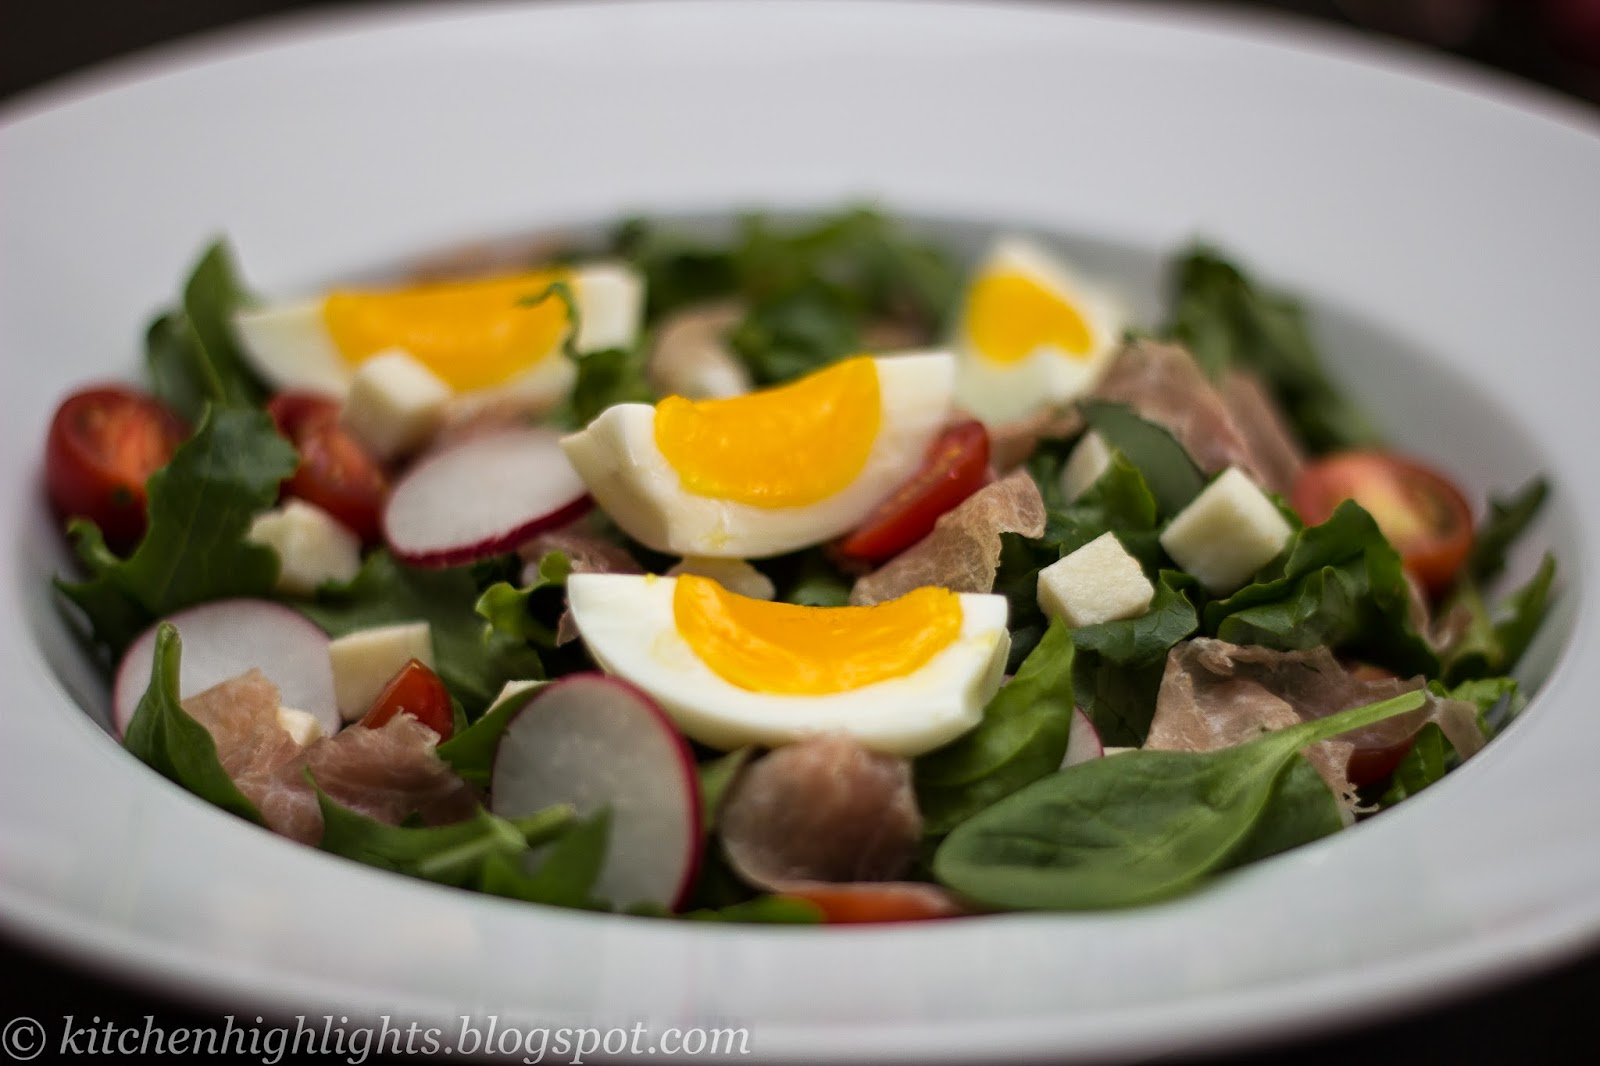 Prepared with fresh cherry tomatoes, lettuce, spinach, arugula, radishes, mozzarella, prosciutto and soft boiled eggs, this salad is light yet nourishing.